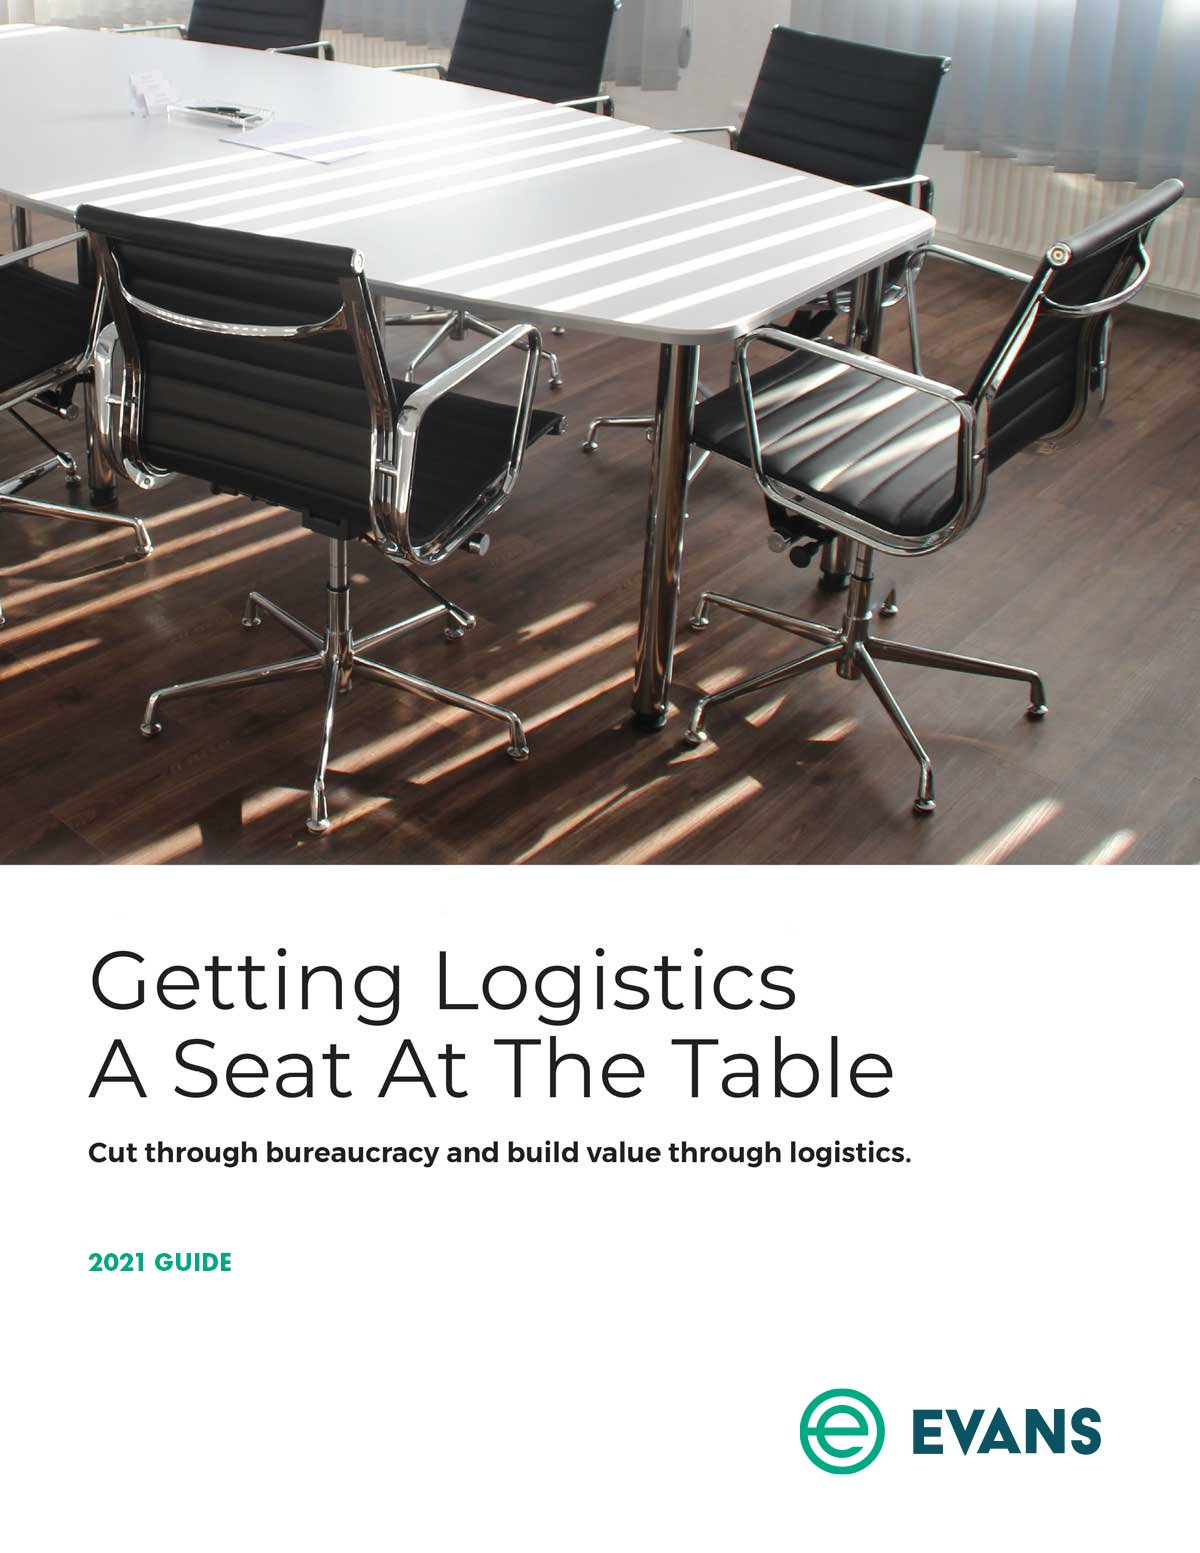 ebook-getting-logistics-a-seat-at-the-table